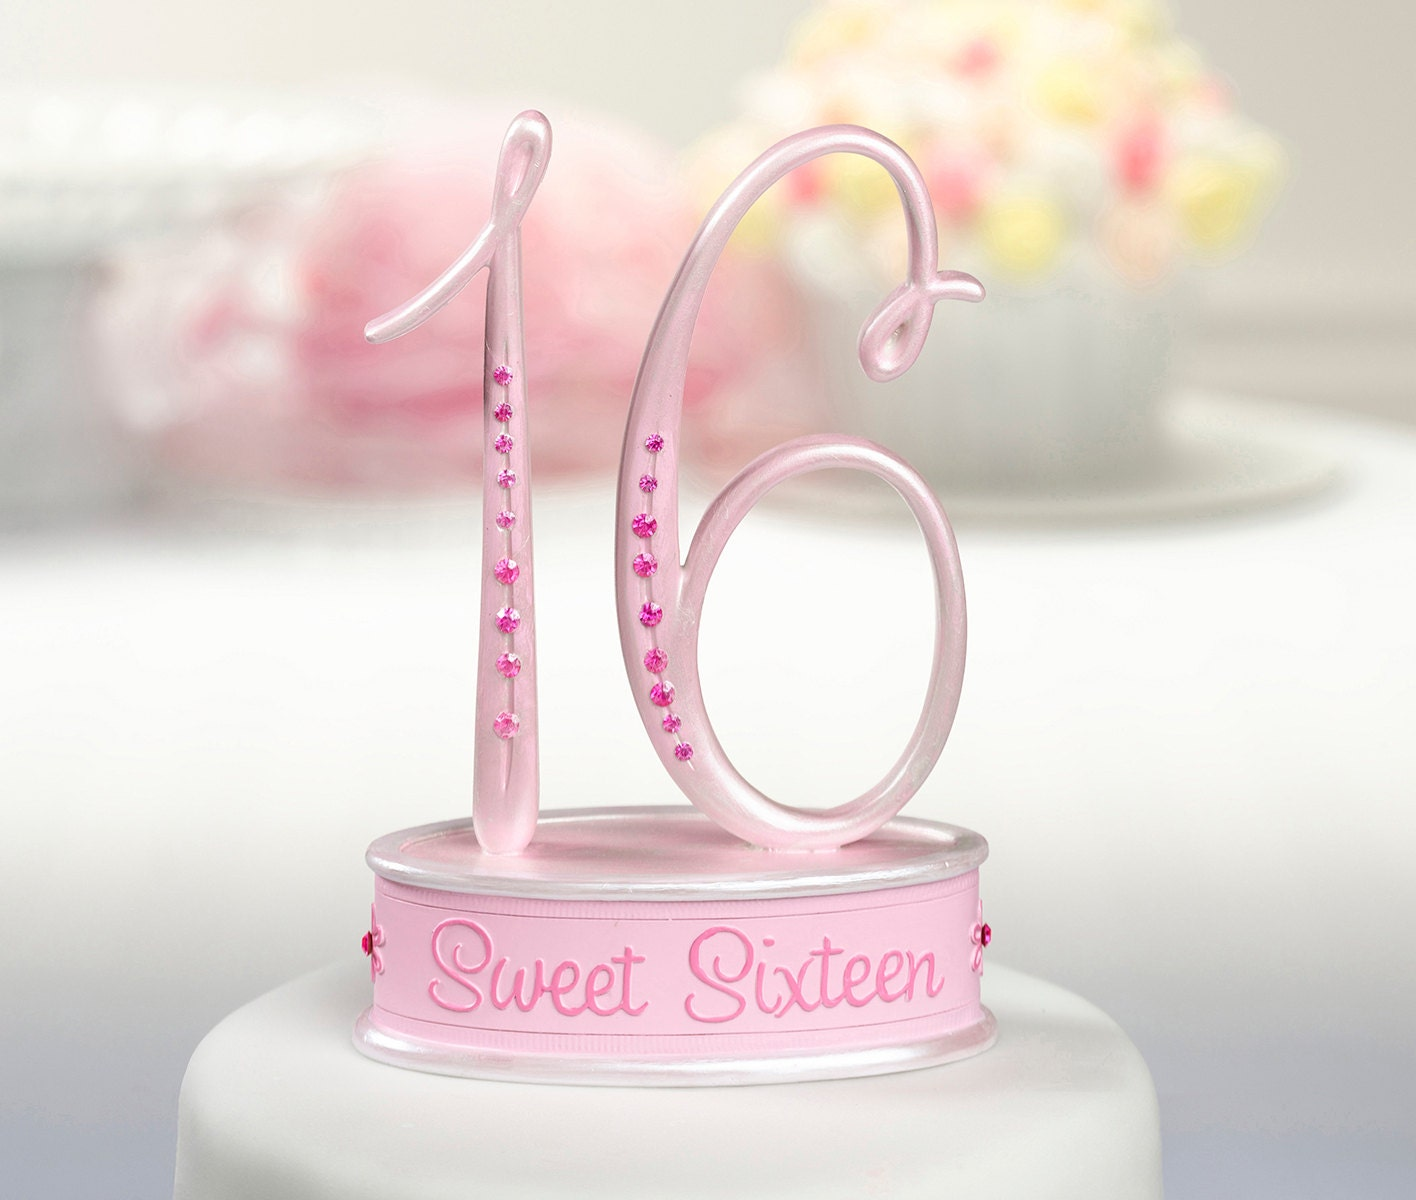 16th Birthday Cake Topper/ Sweet Sixteen Cake Topper/ Pink